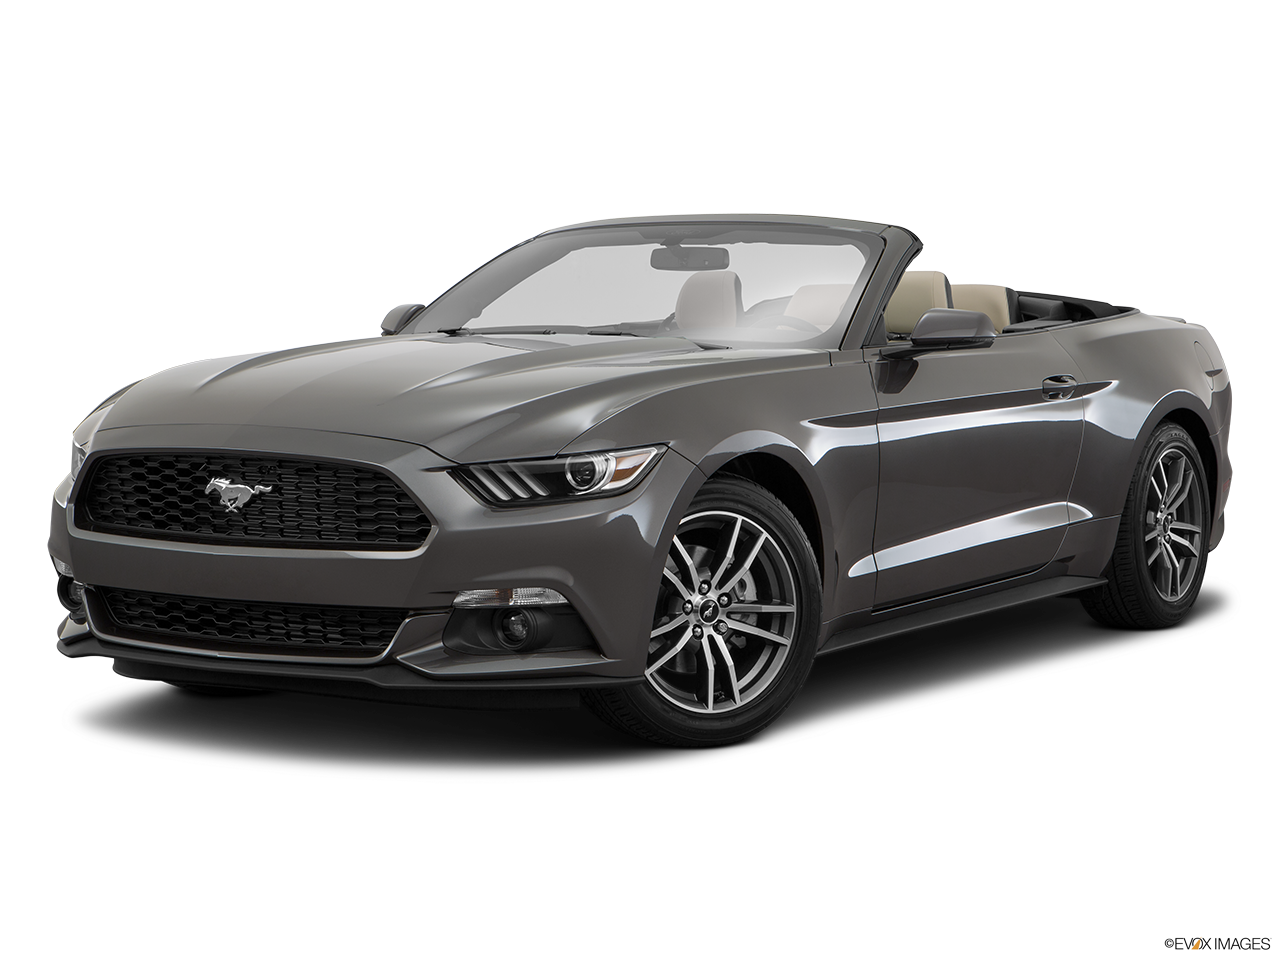 Test Drive A 2016 Ford Mustang at Sunland Ford in Victorville